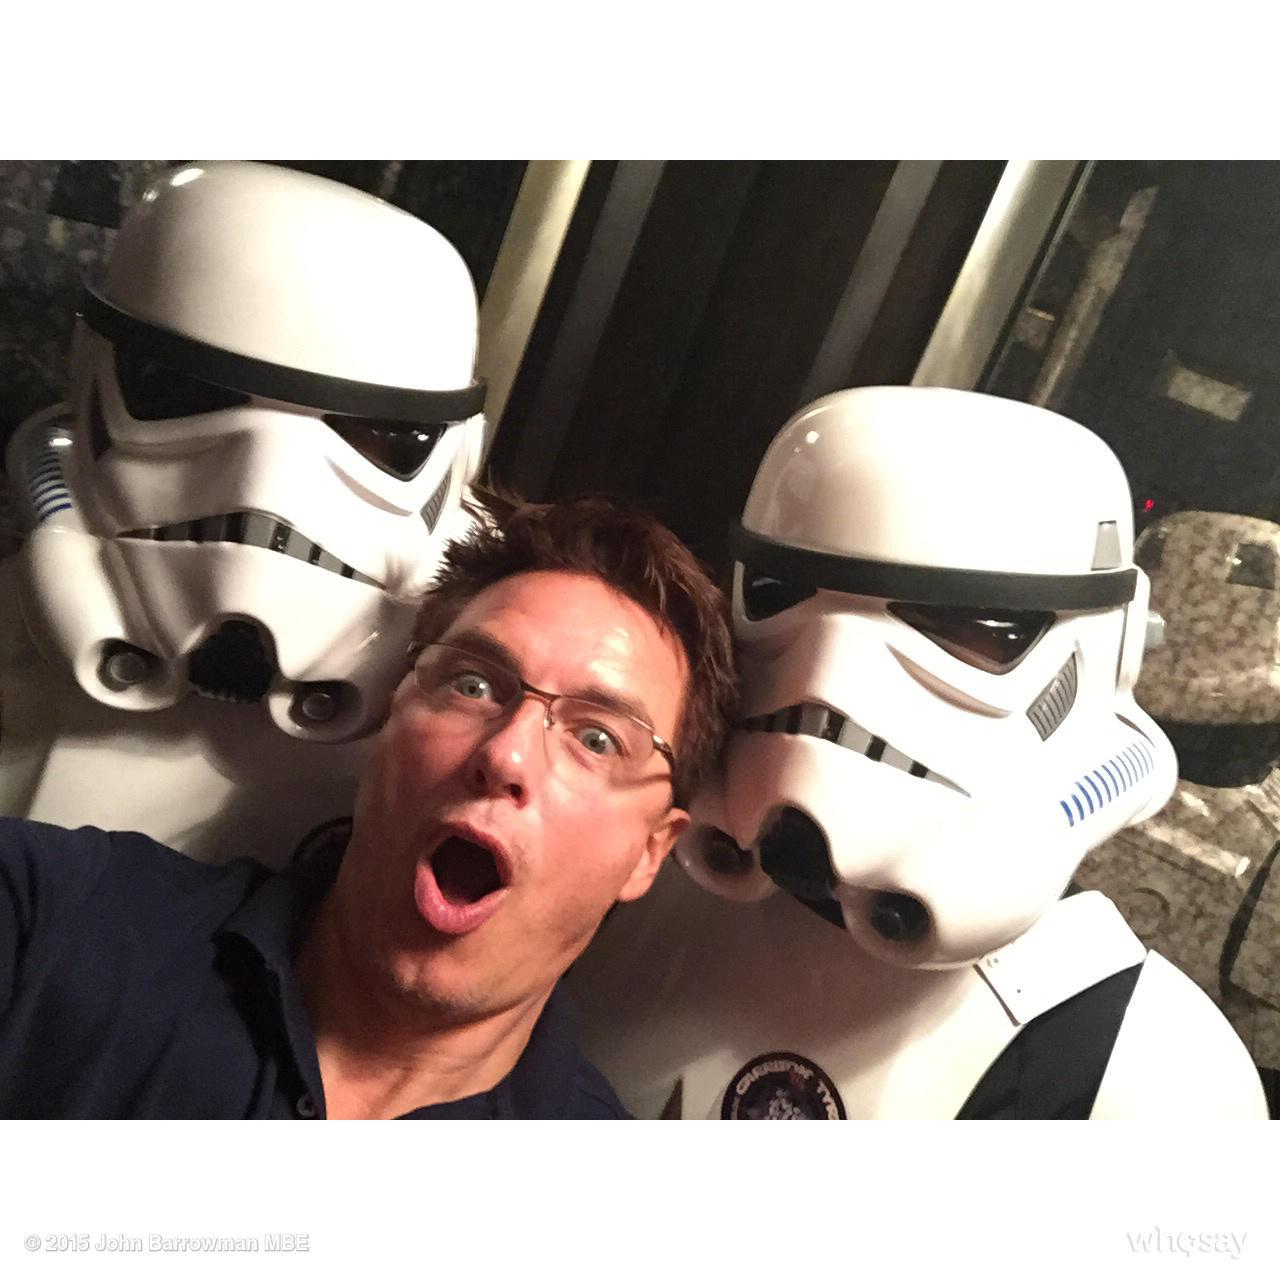 Can't sleep. But oh how I love an @DragonCon hotel elevator. OH #TheForce #DragonCon #DragonCon2015  Jb http://t.co/mPGaf9DyIi